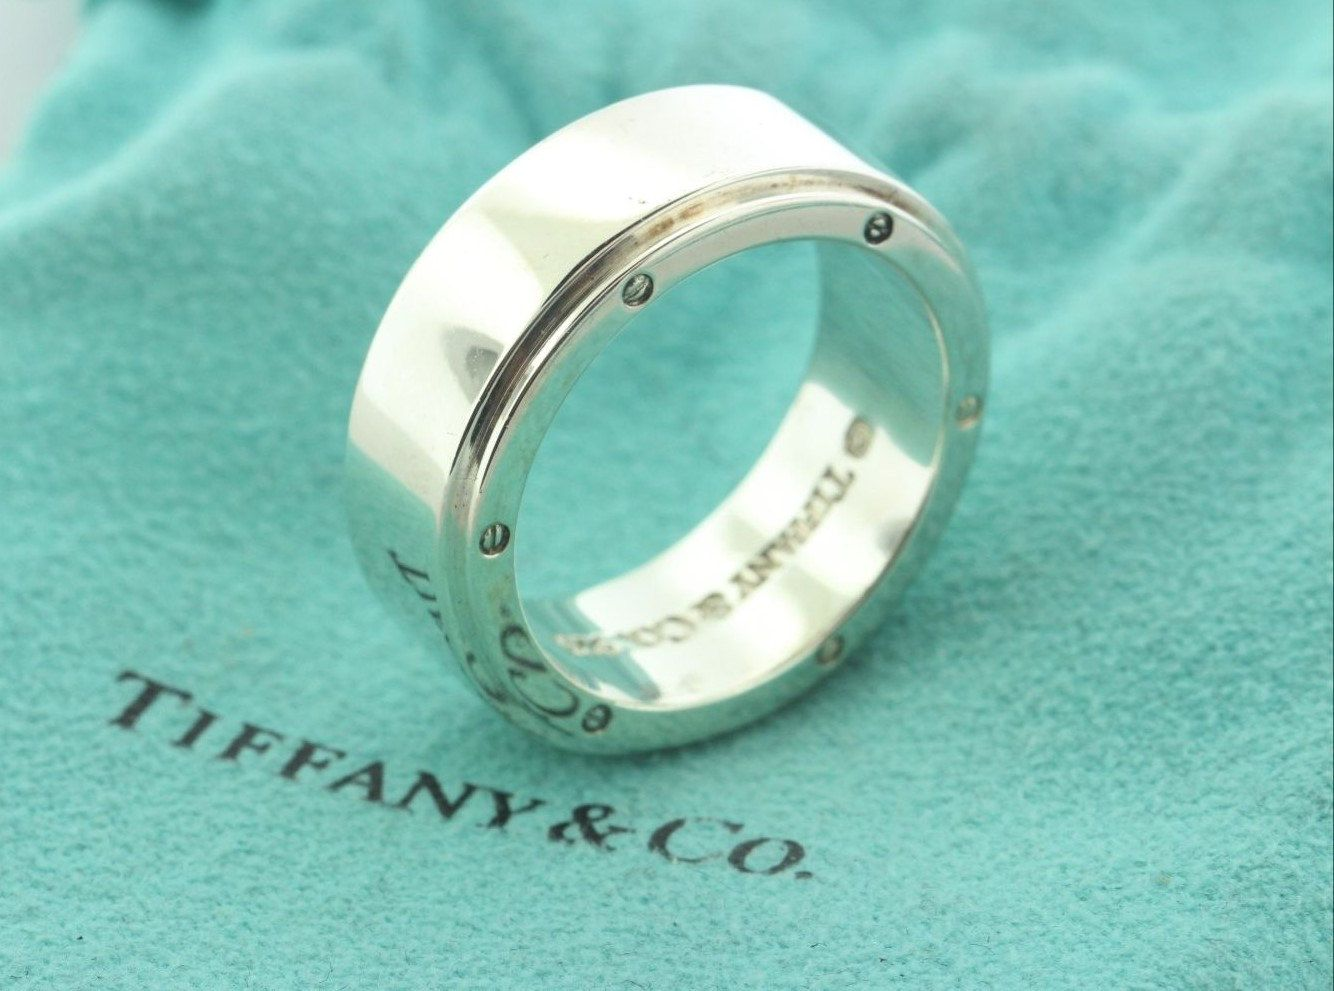 27c7d67b9 Vintage Tiffany & Co. Metropolis Sterling Silver Band Ring Size 9.5 by  wandajewelry2013 on Etsy